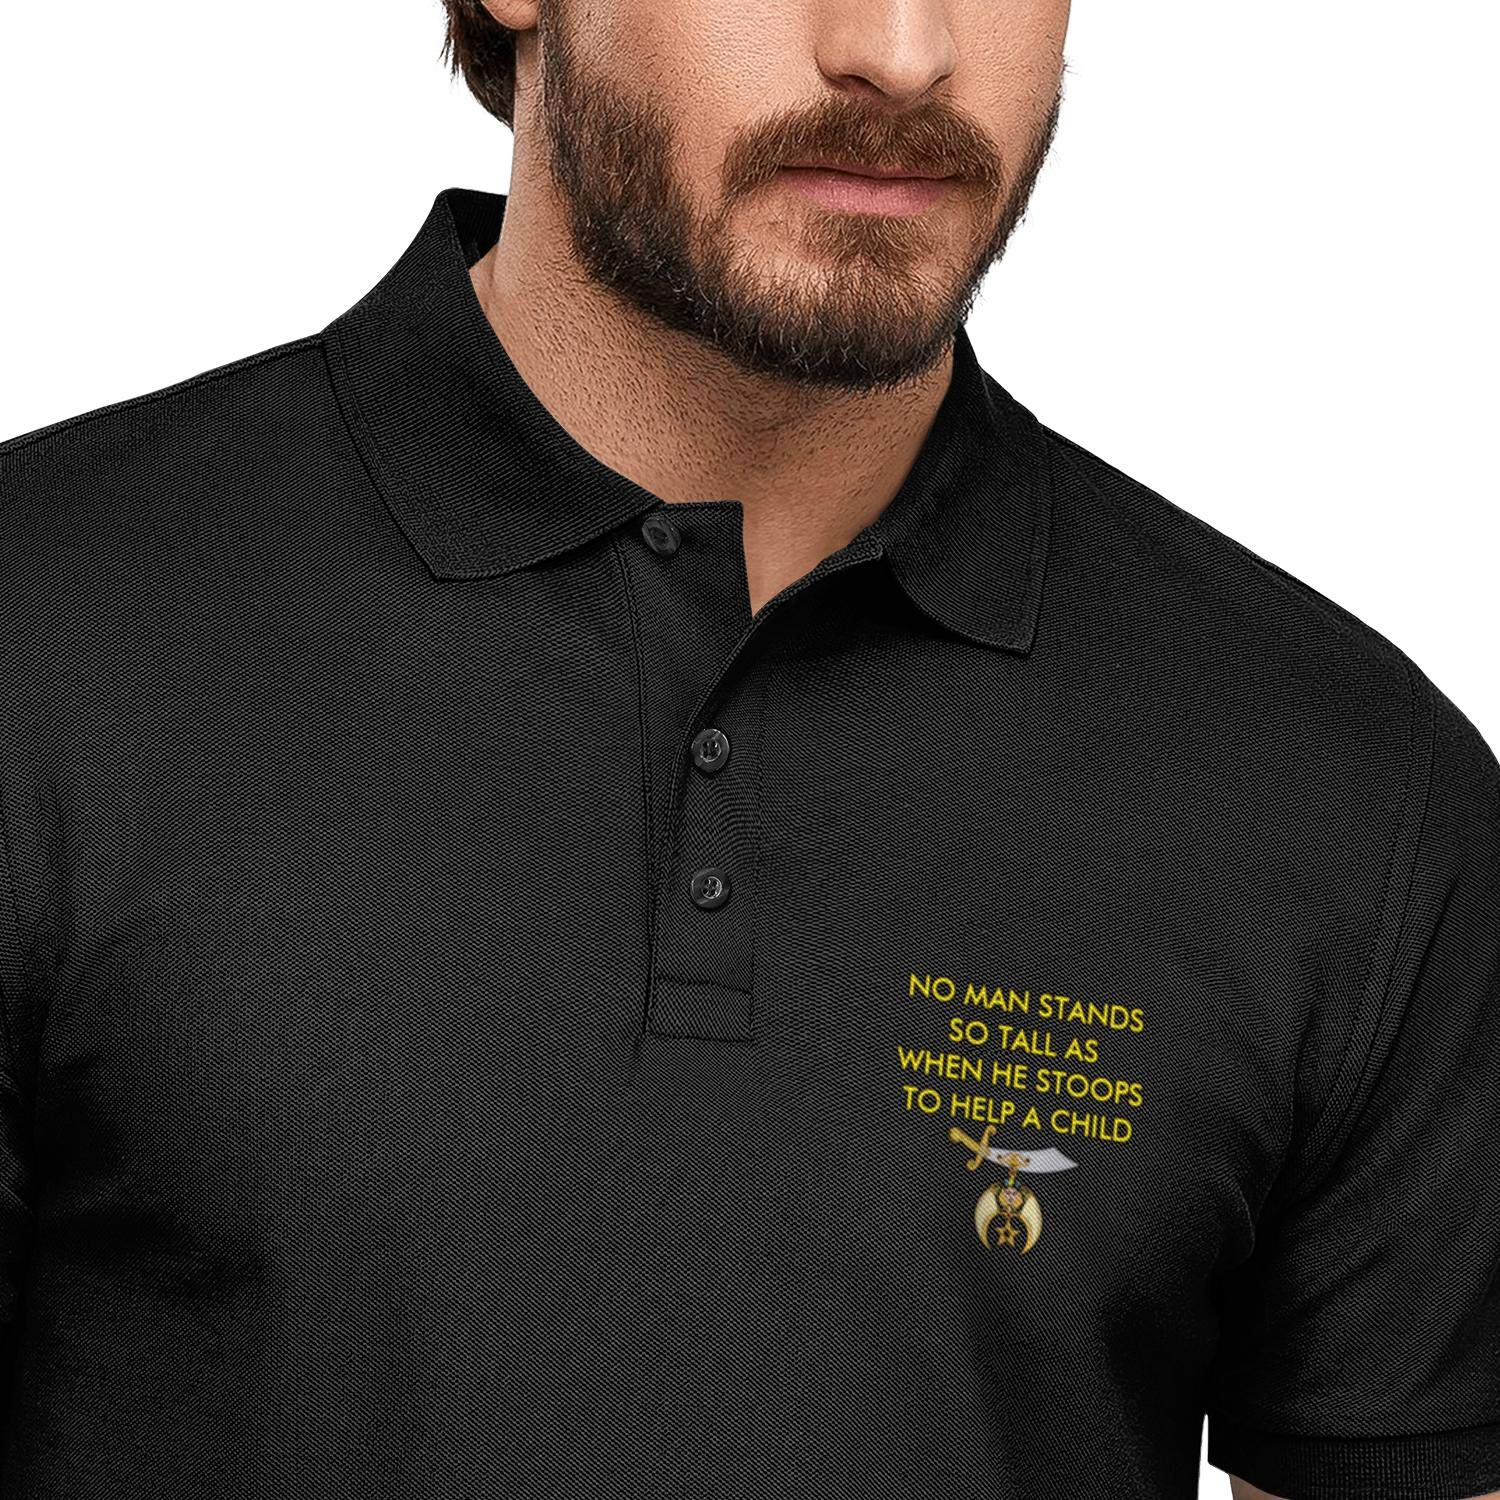 FPPING No Man Stands So Tall As When He Stoops to Help A Child Printed Mens Party Polo Shirt Slim Fit Tee